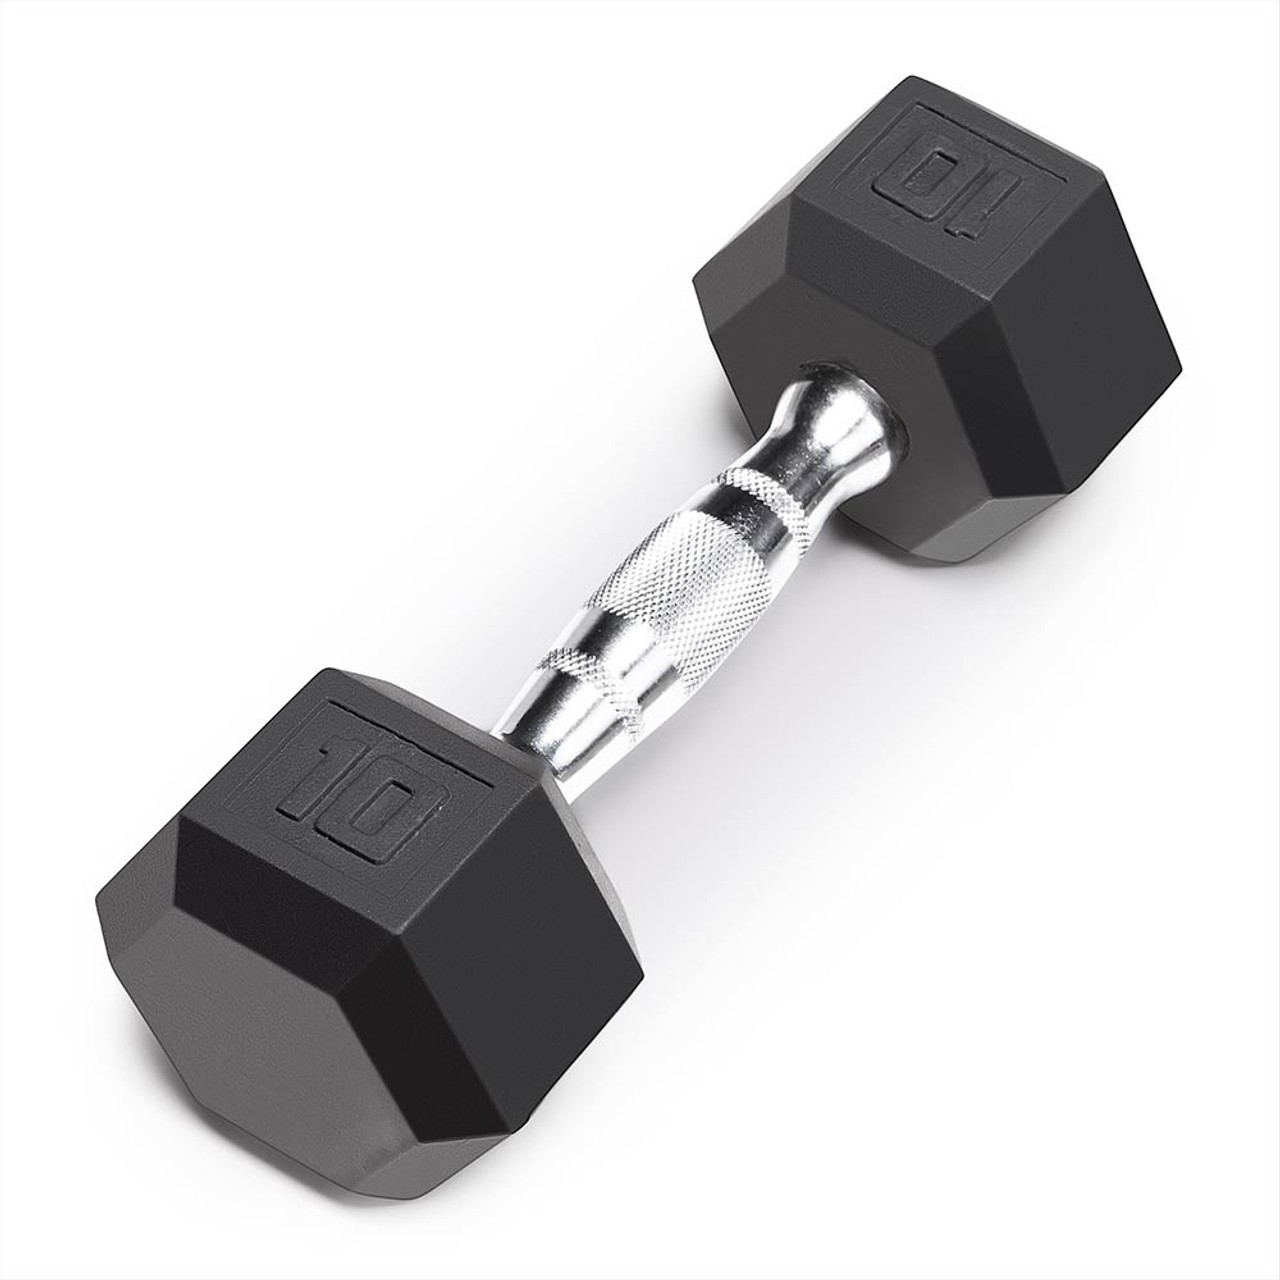 Marcy 10lb Rubber Hex Dumbbell Ibrh-010 Recycled Coated